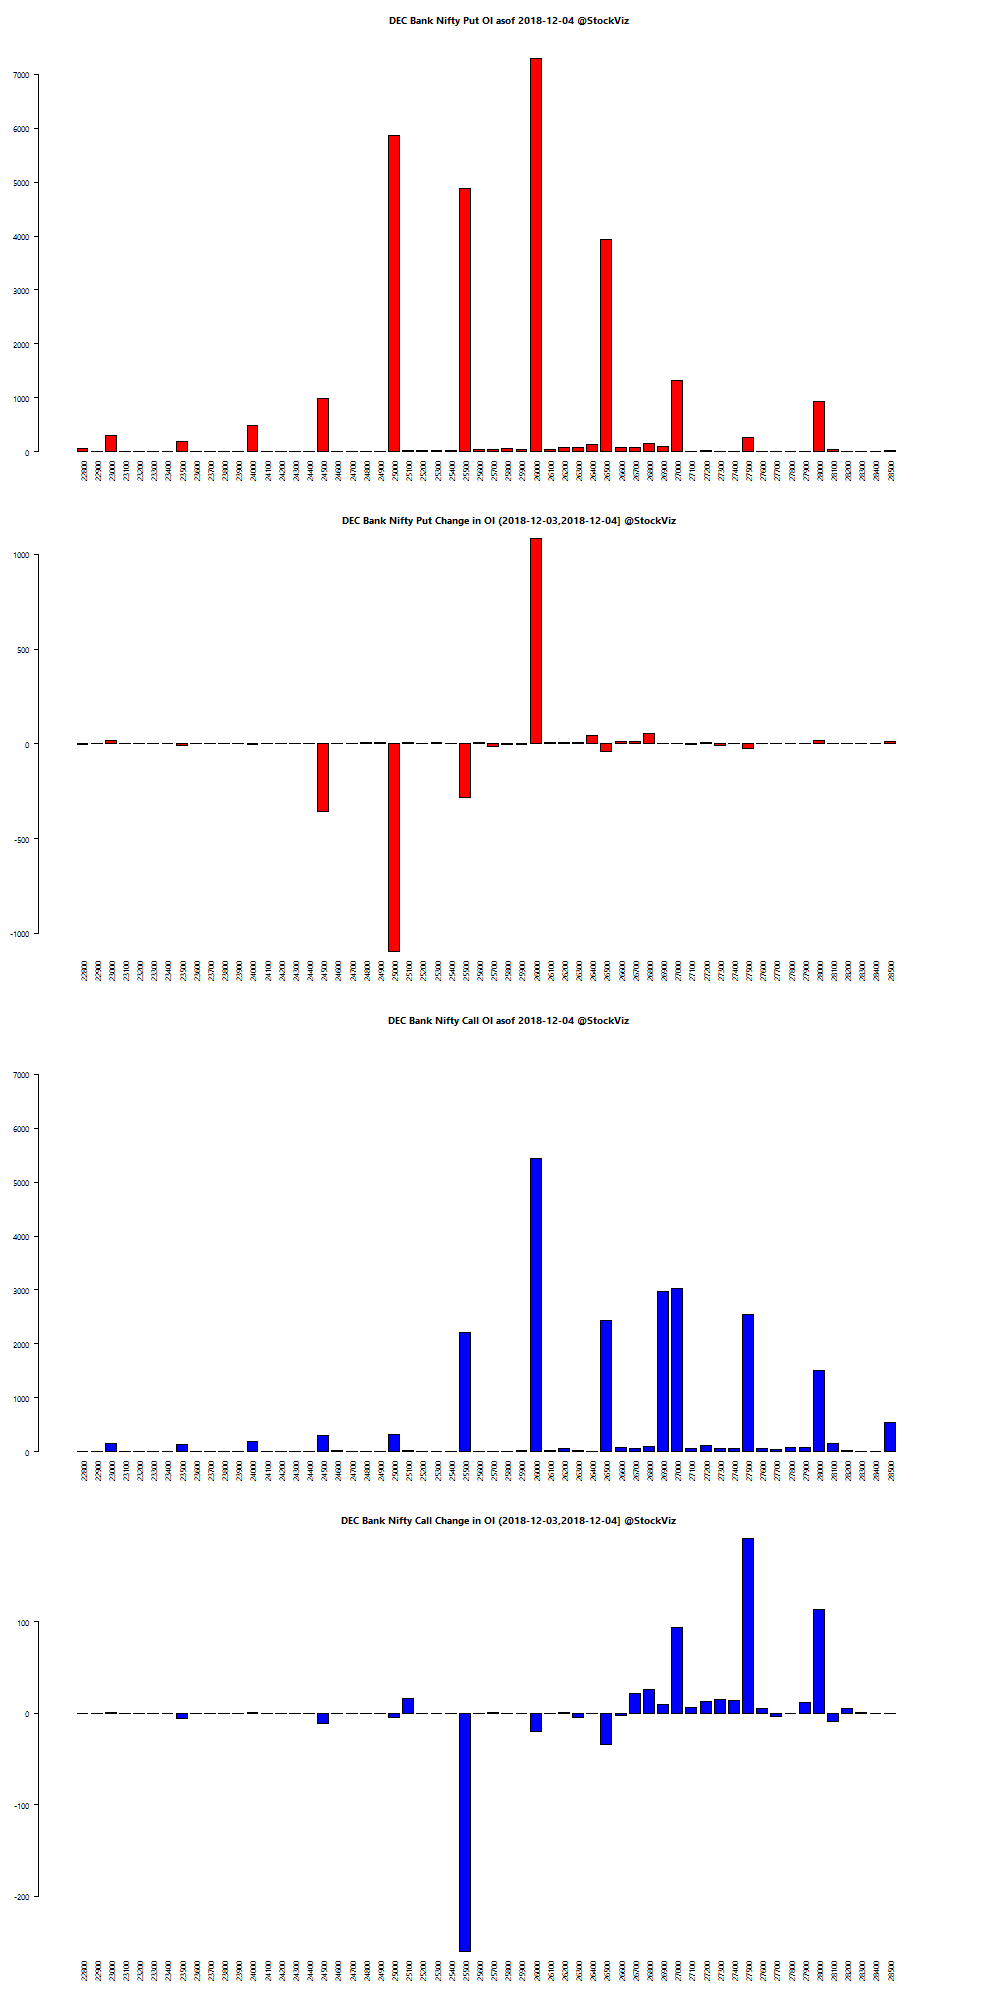 DEC BANKNIFTY OI chart